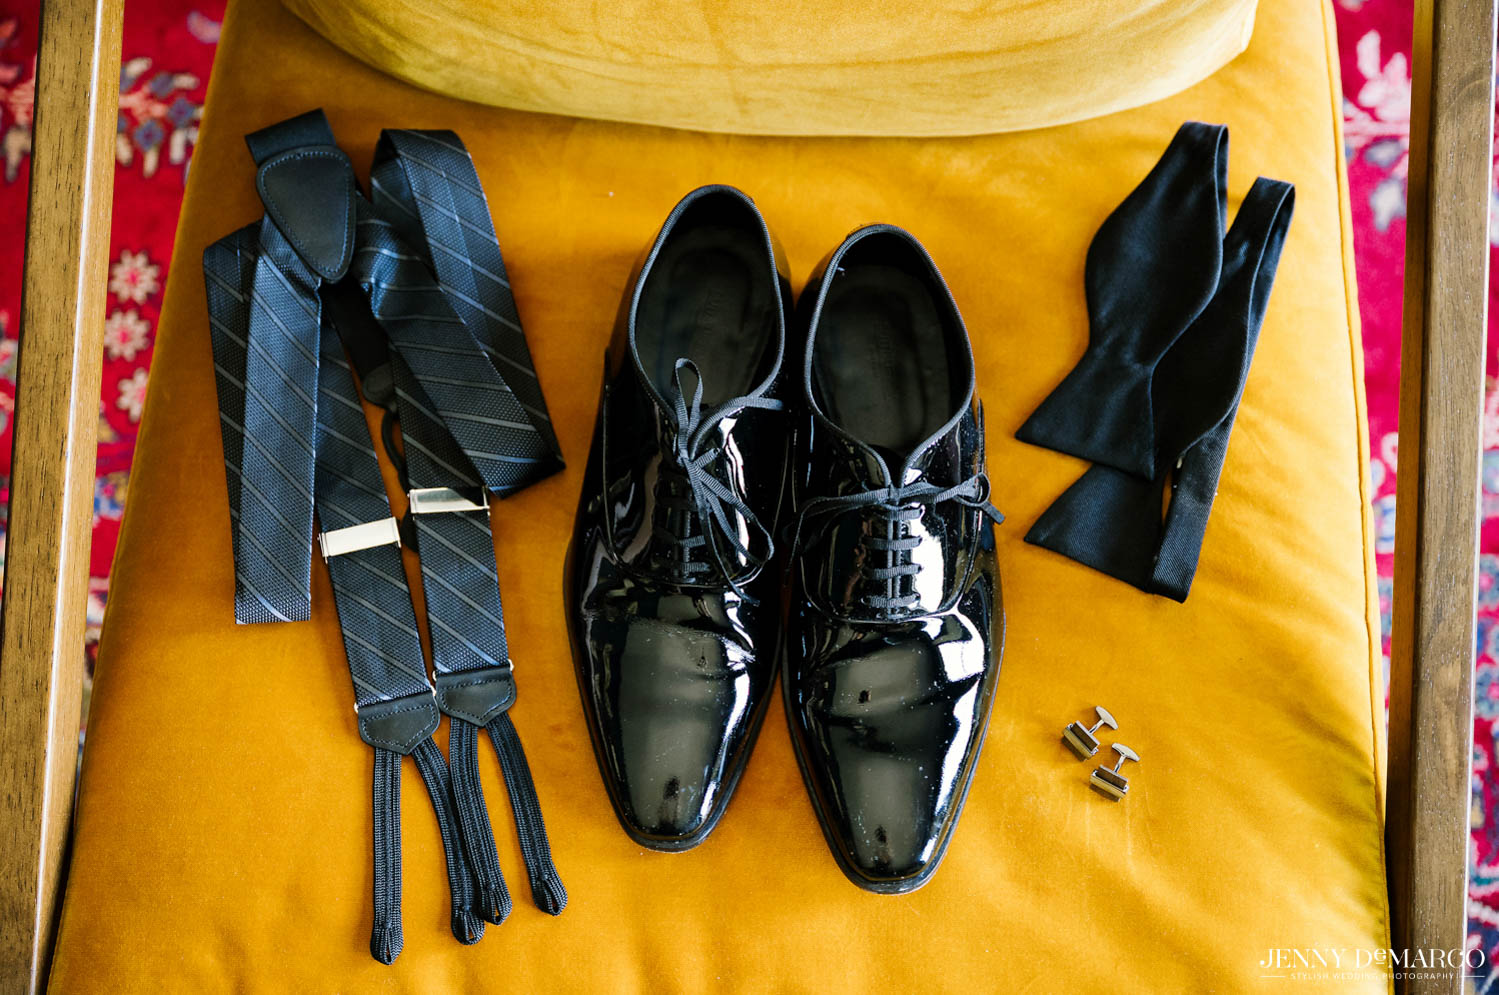 groom accessories of suspenders, shoes, and bow tie